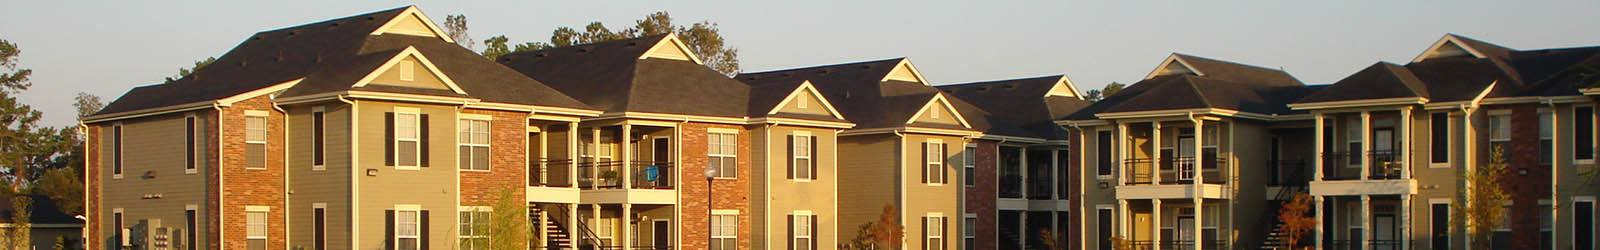 Pet friendly apartments in Lake Charles